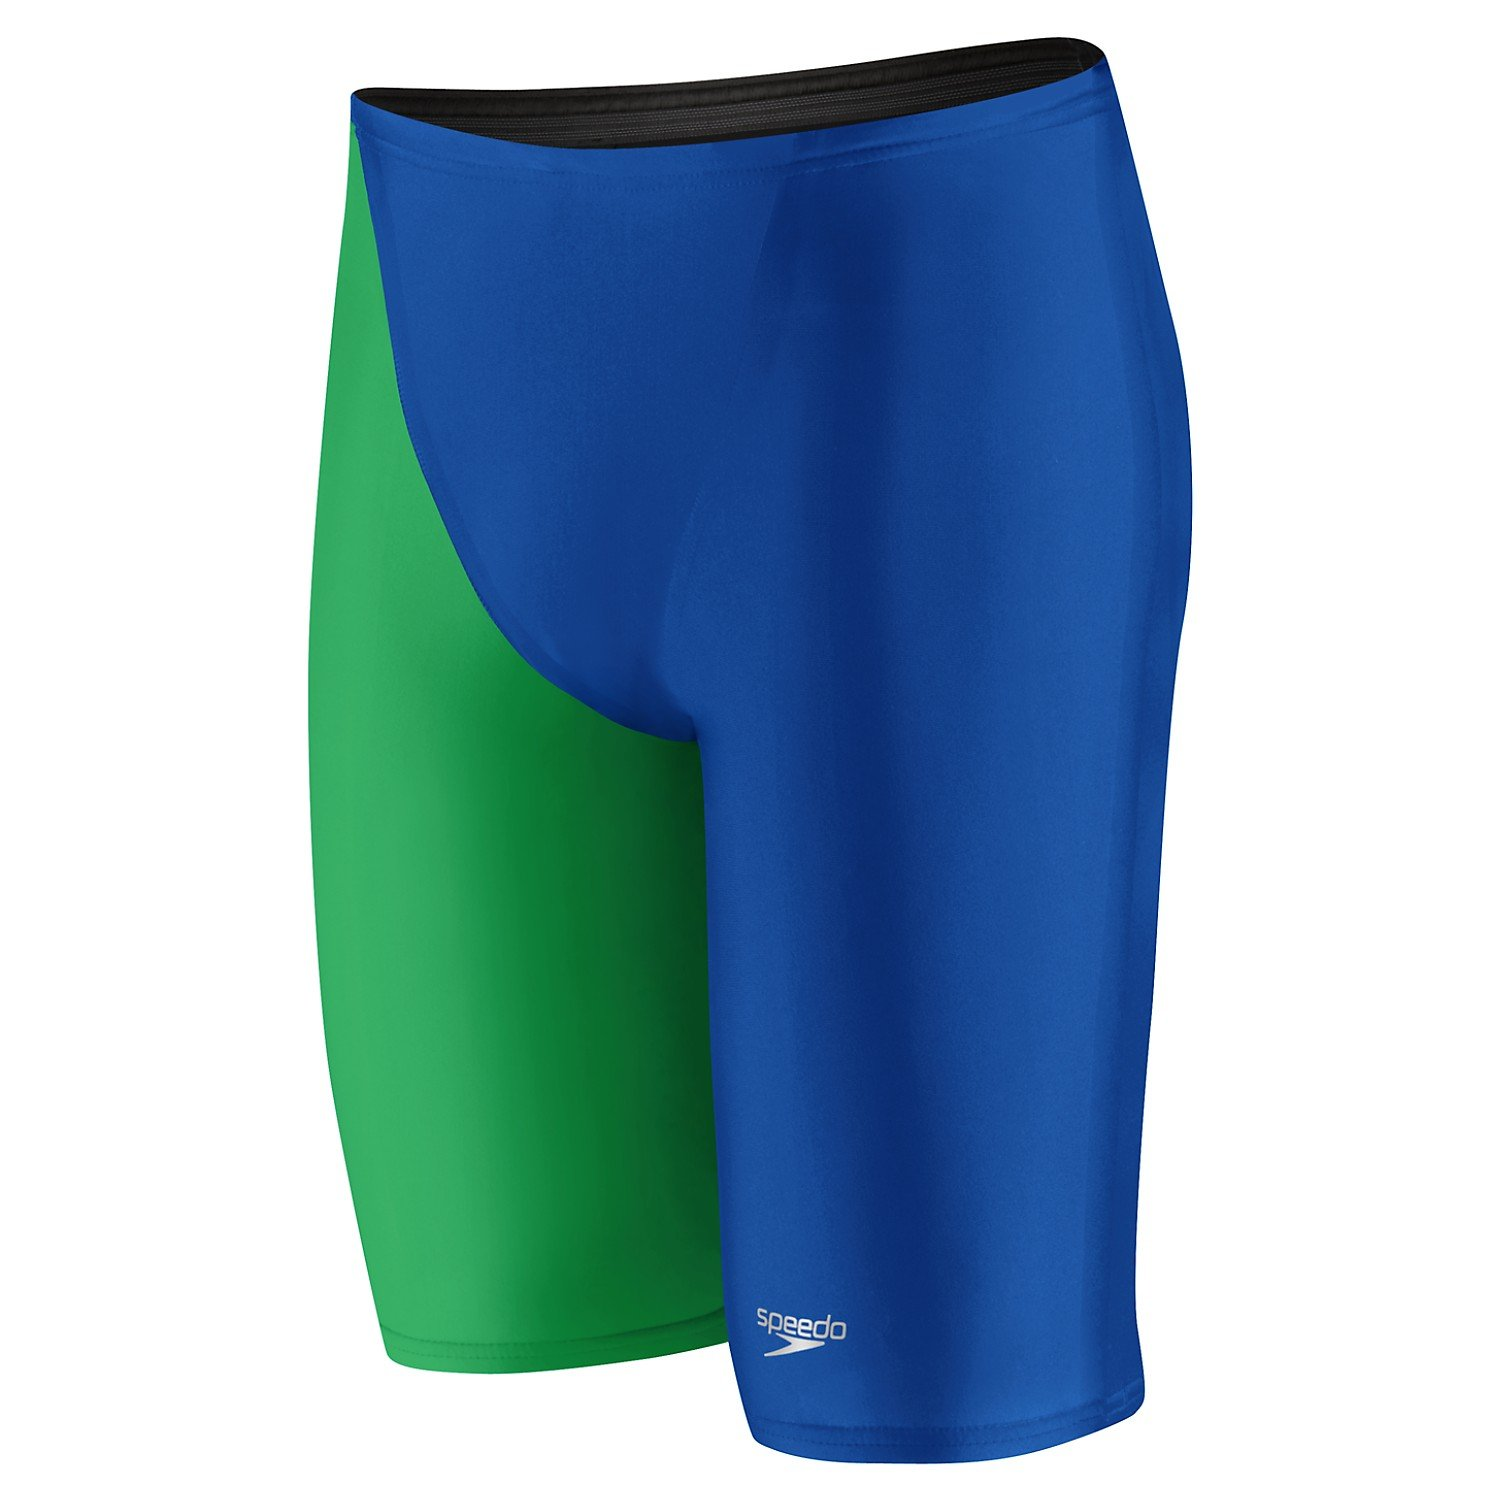 Speedo 7050711 Mens Lzr Elite 2 High Waist Jammers, Blue/Green - 27